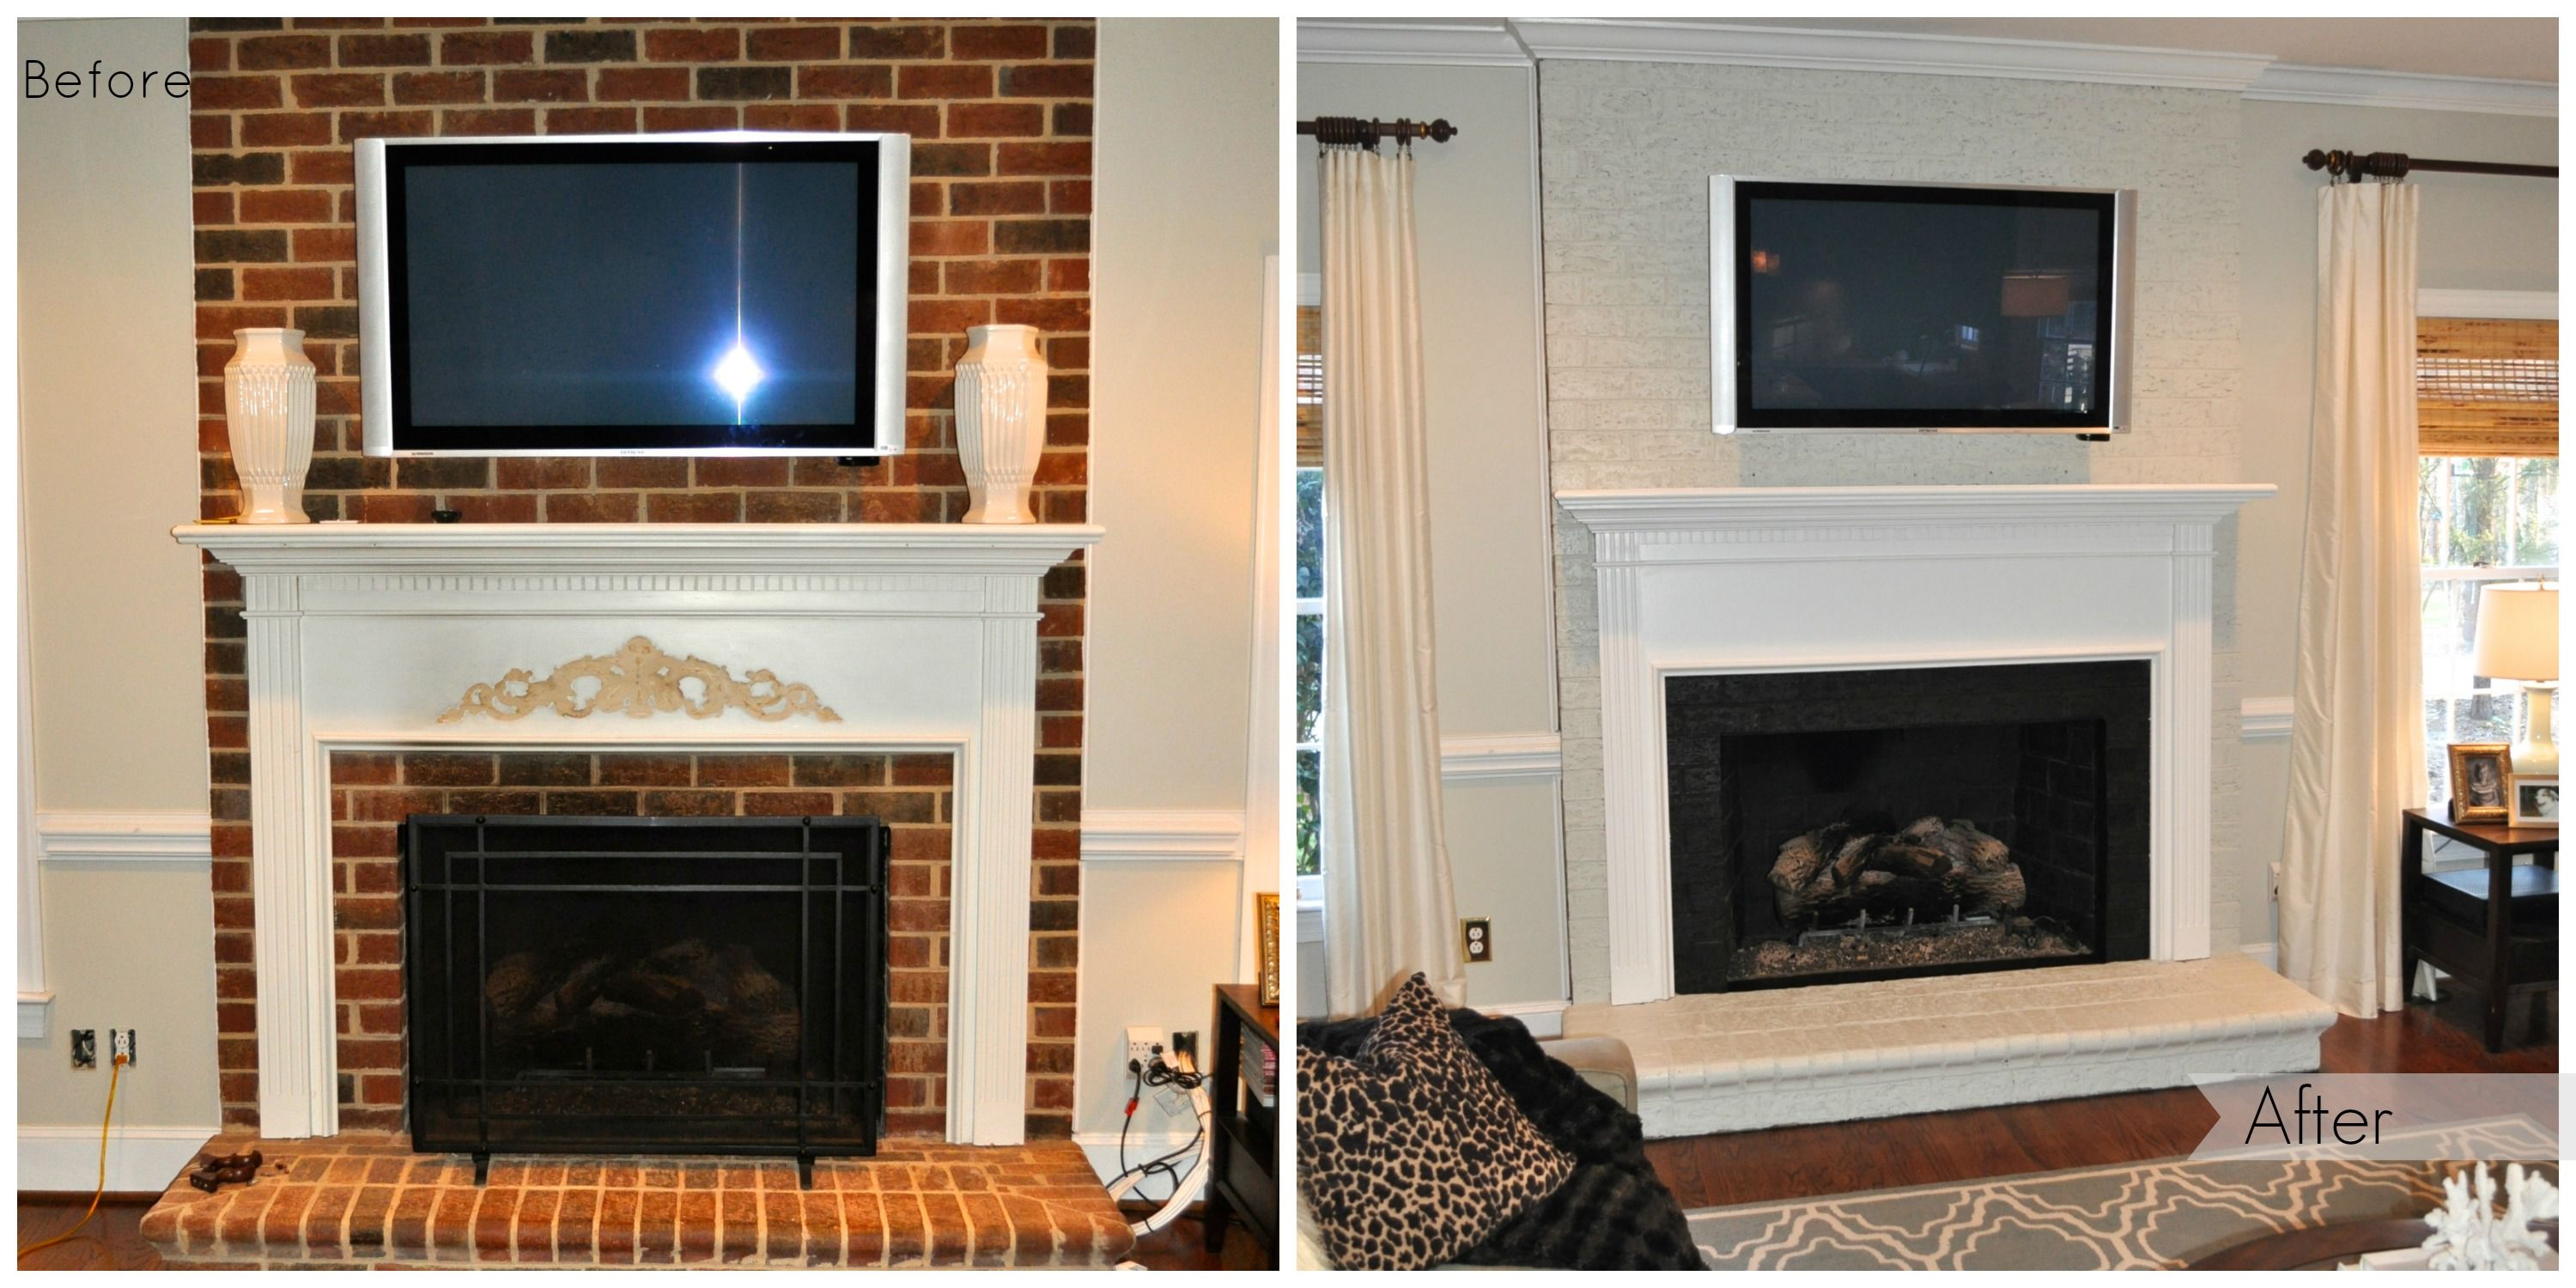 Painted brick fireplace Before & After! Paint the brick the same color as  the wall